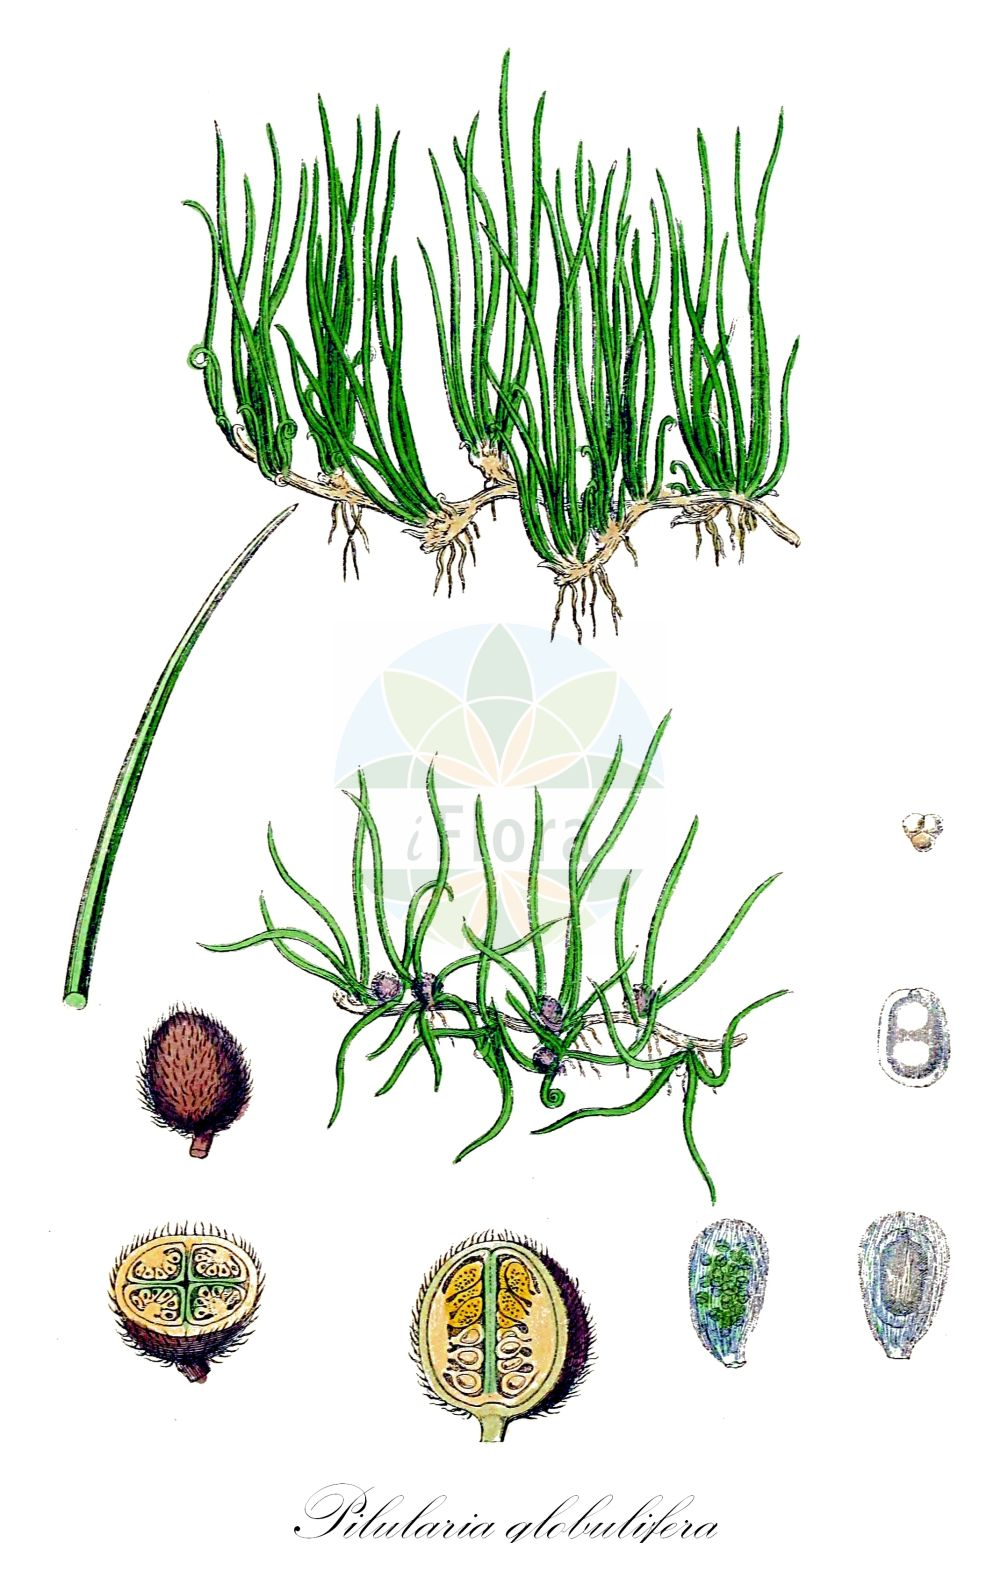 Historische Abbildung von Pilularia globulifera (Kugel-Pillenfarn - Pillwort). Das Bild zeigt Blatt, Bluete, Frucht und Same. ---- Historical Drawing of Pilularia globulifera (Kugel-Pillenfarn - Pillwort).The image is showing leaf, flower, fruit and seed. (Pilularia globulifera,Kugel-Pillenfarn,Pillwort,Pillenfarn,Pilularia,Pillenfarn,Pillwort,Marsileaceae,Kleefarngewaechse,Waterclover family,Blatt,Bluete,Frucht,Same,leaf,flower,fruit,seed,Sowerby (1790-1813))